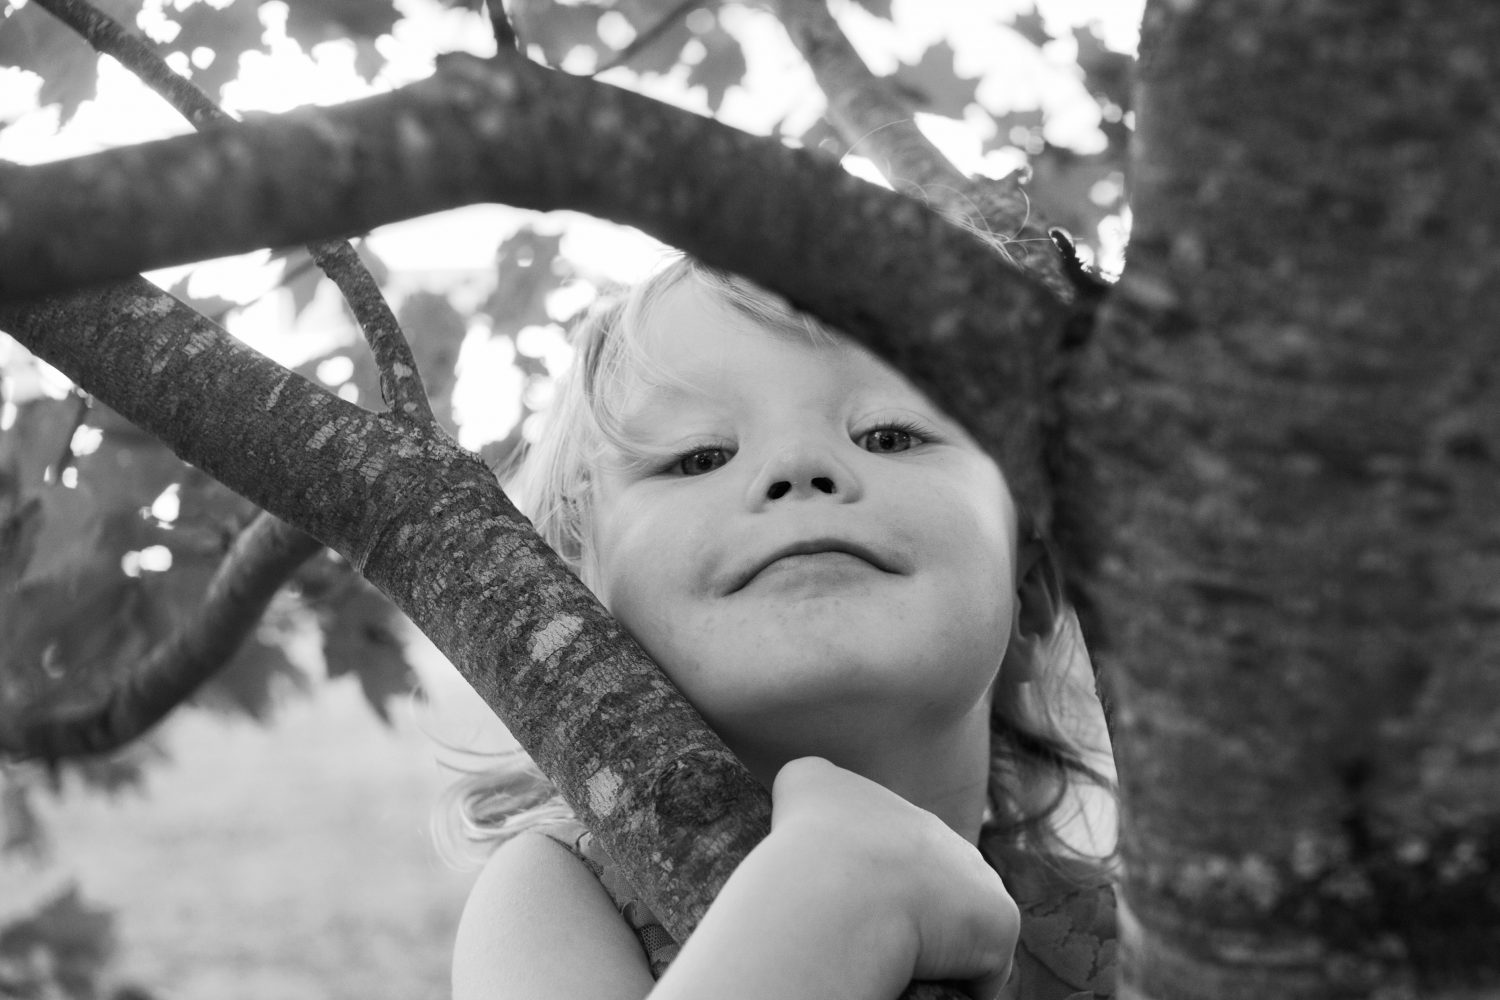 candid black and white photo of little girl in a tree